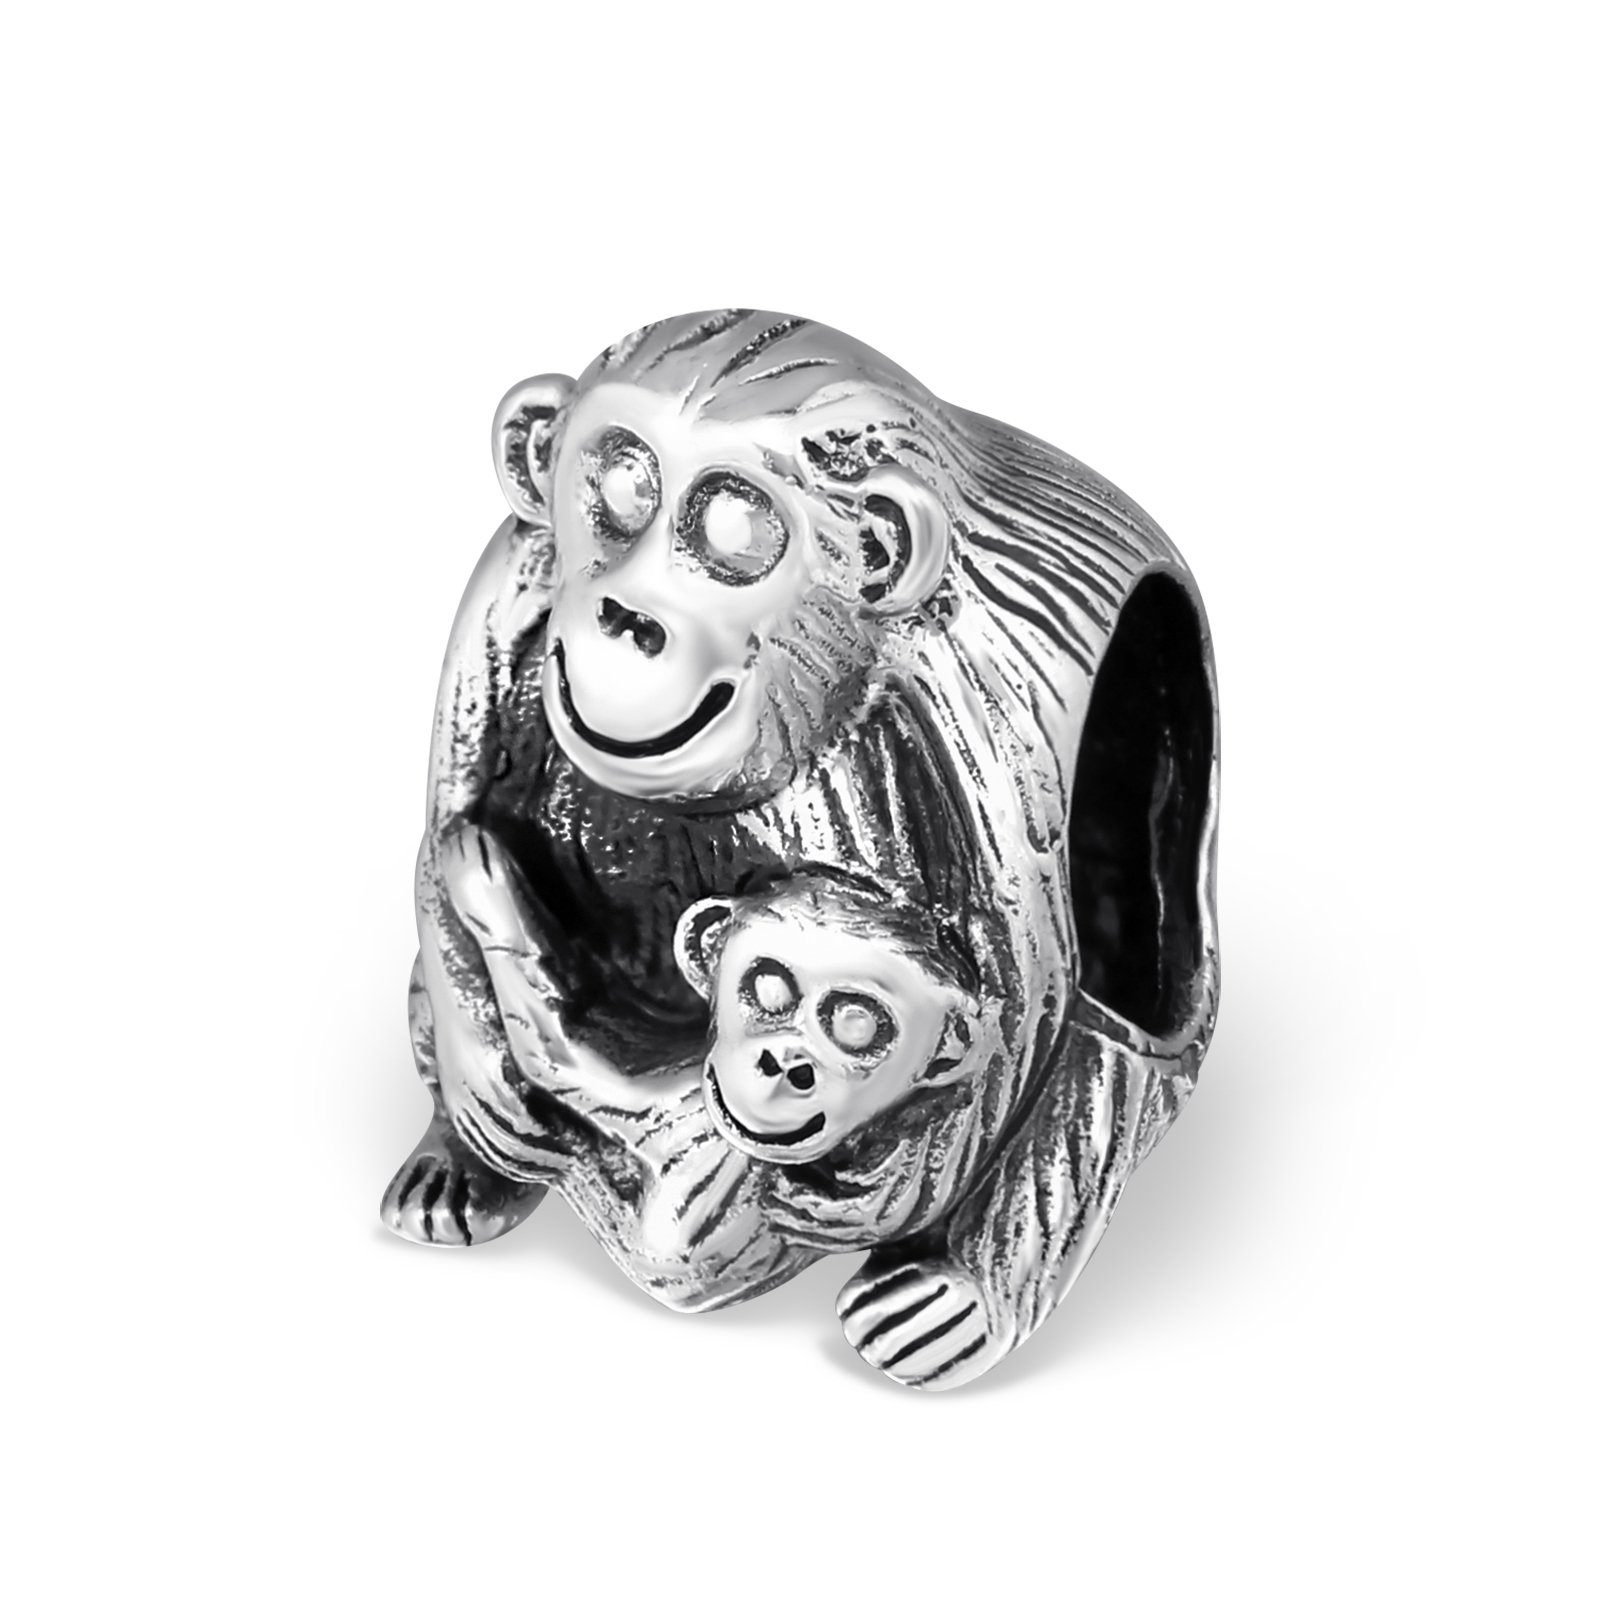 Silvadore – Silver Bead – Monkey Baby Dad Son Smile Happy Ape Sitting – 925 Sterling Charm 3D Slide On 631 – Fits…